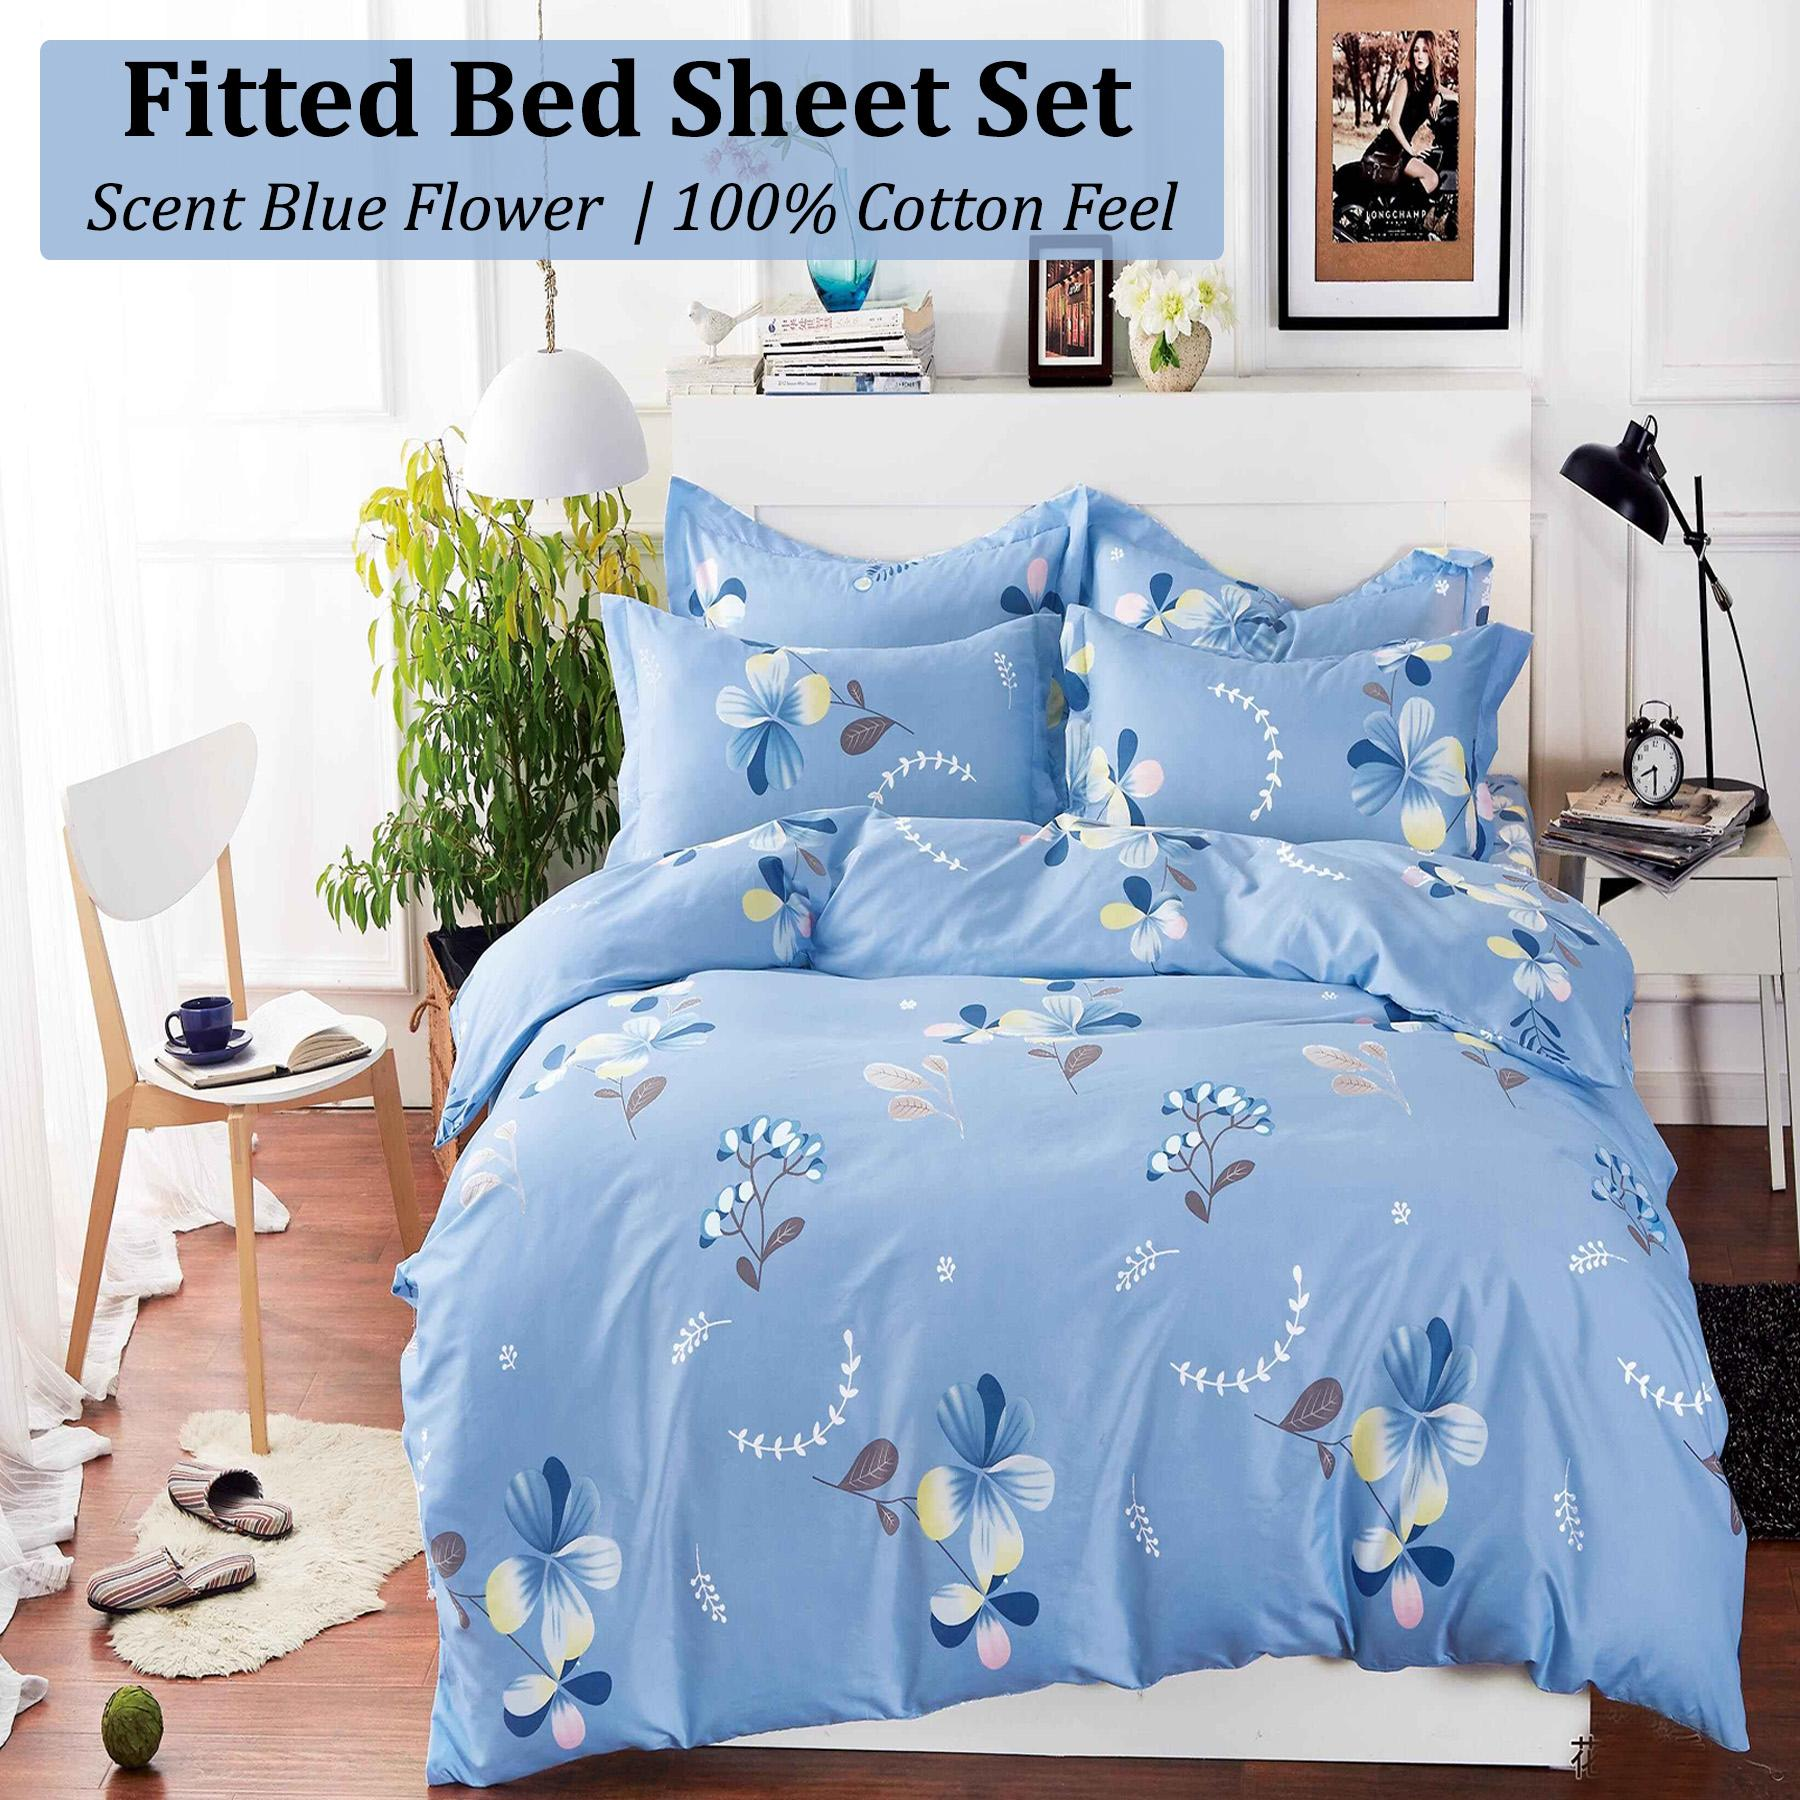 Fitted Bed Sheet Set Brushed Microfiber, Breathable, Extra Soft And  Comfortable   Wrinkle,